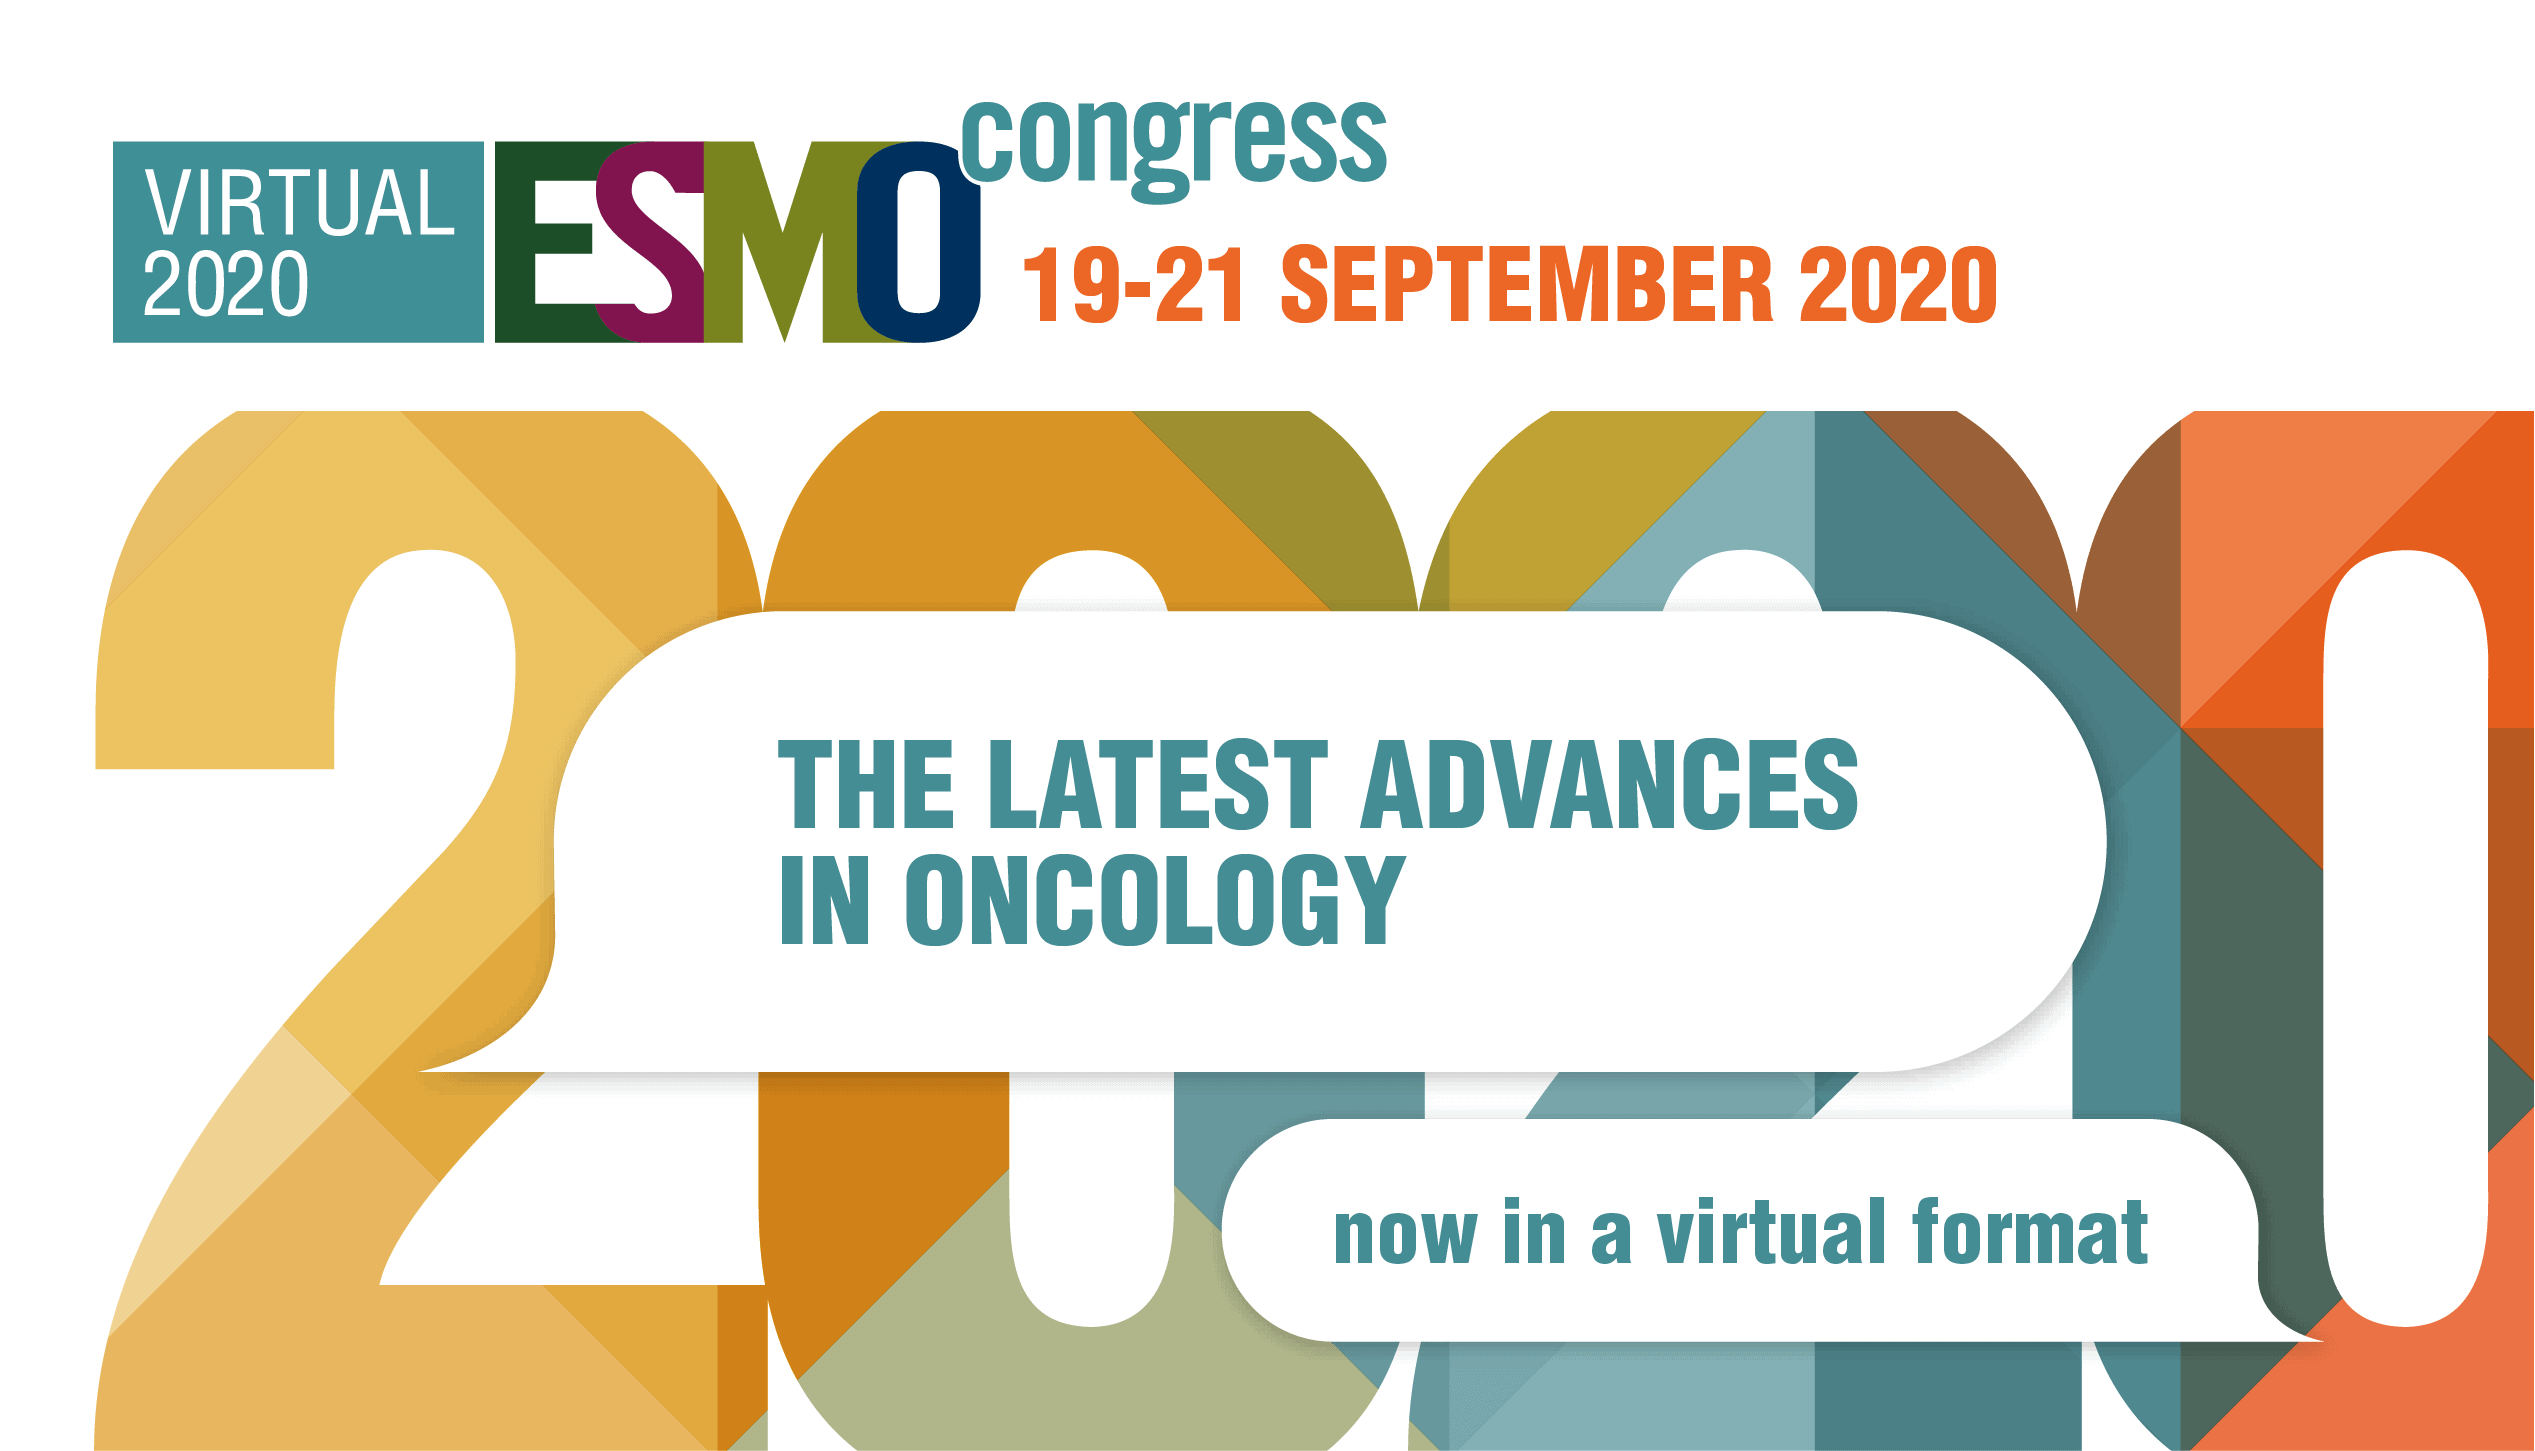 ESMO: Lorlatinib outperforms crizotinib in ALK-positive advanced NSCLC